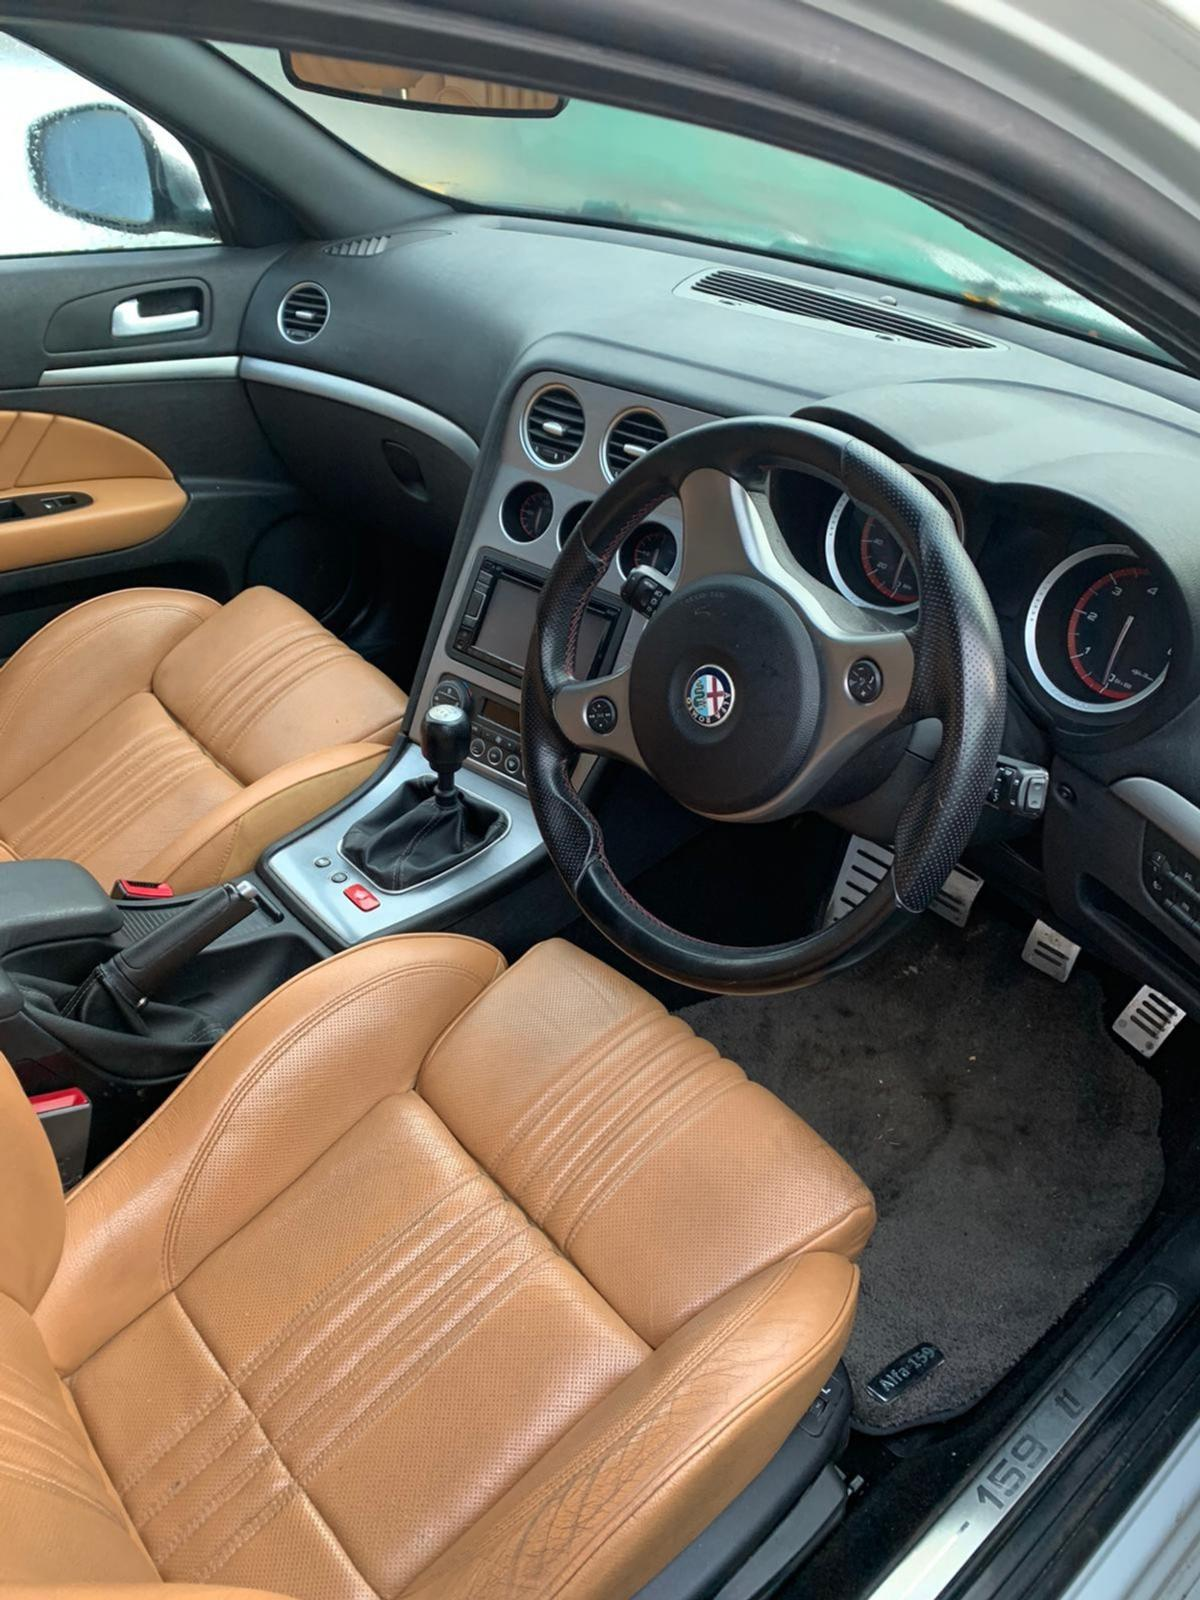 Alfa 159 Ti Tan Leather Interior For Sale I In Rh2 Banstead For 250 00 For Sale Shpock